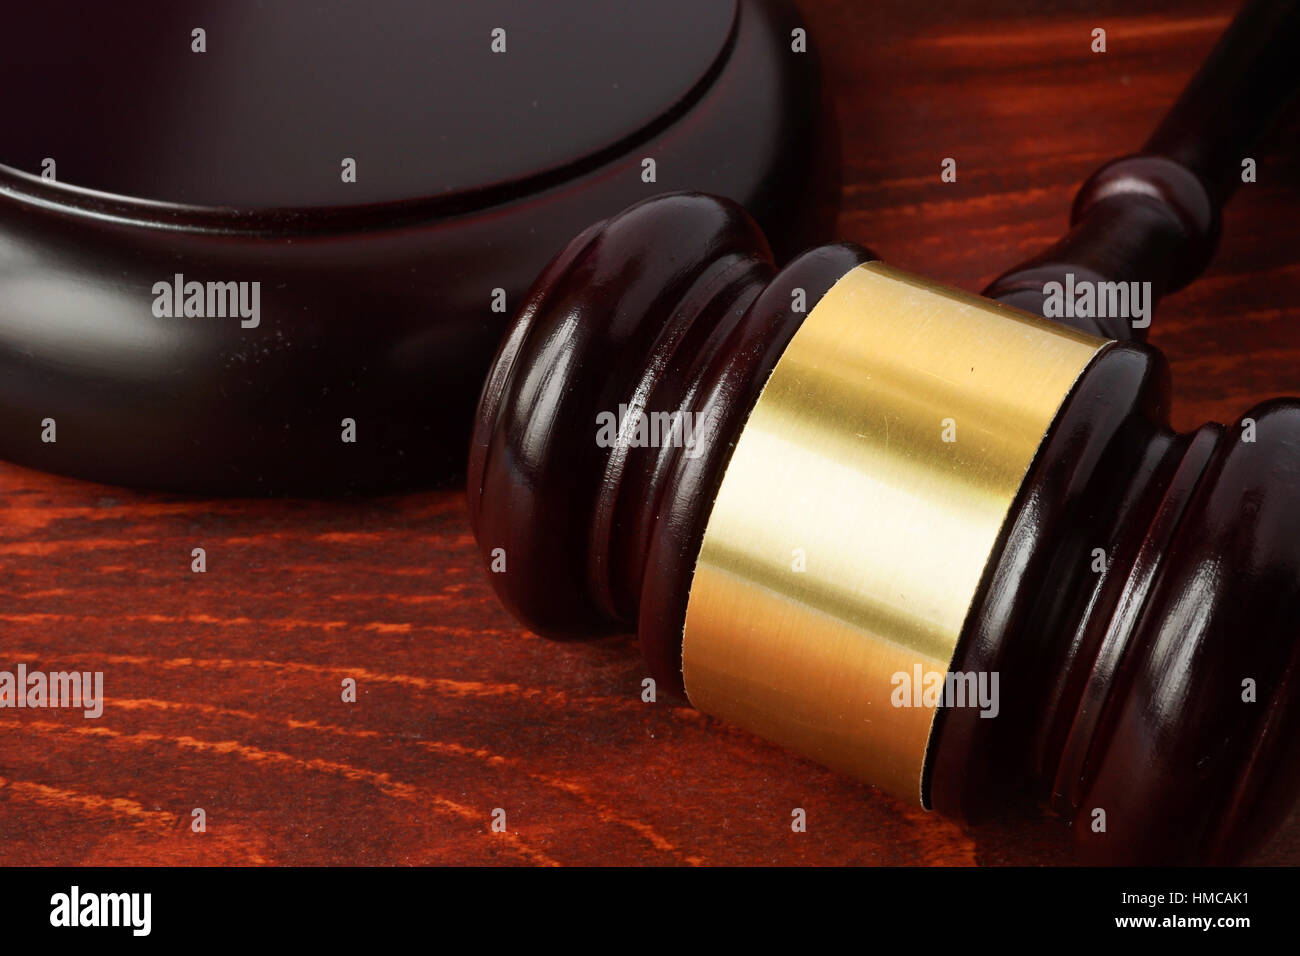 Gavel on a wooden table. Justice concept. Stock Photo